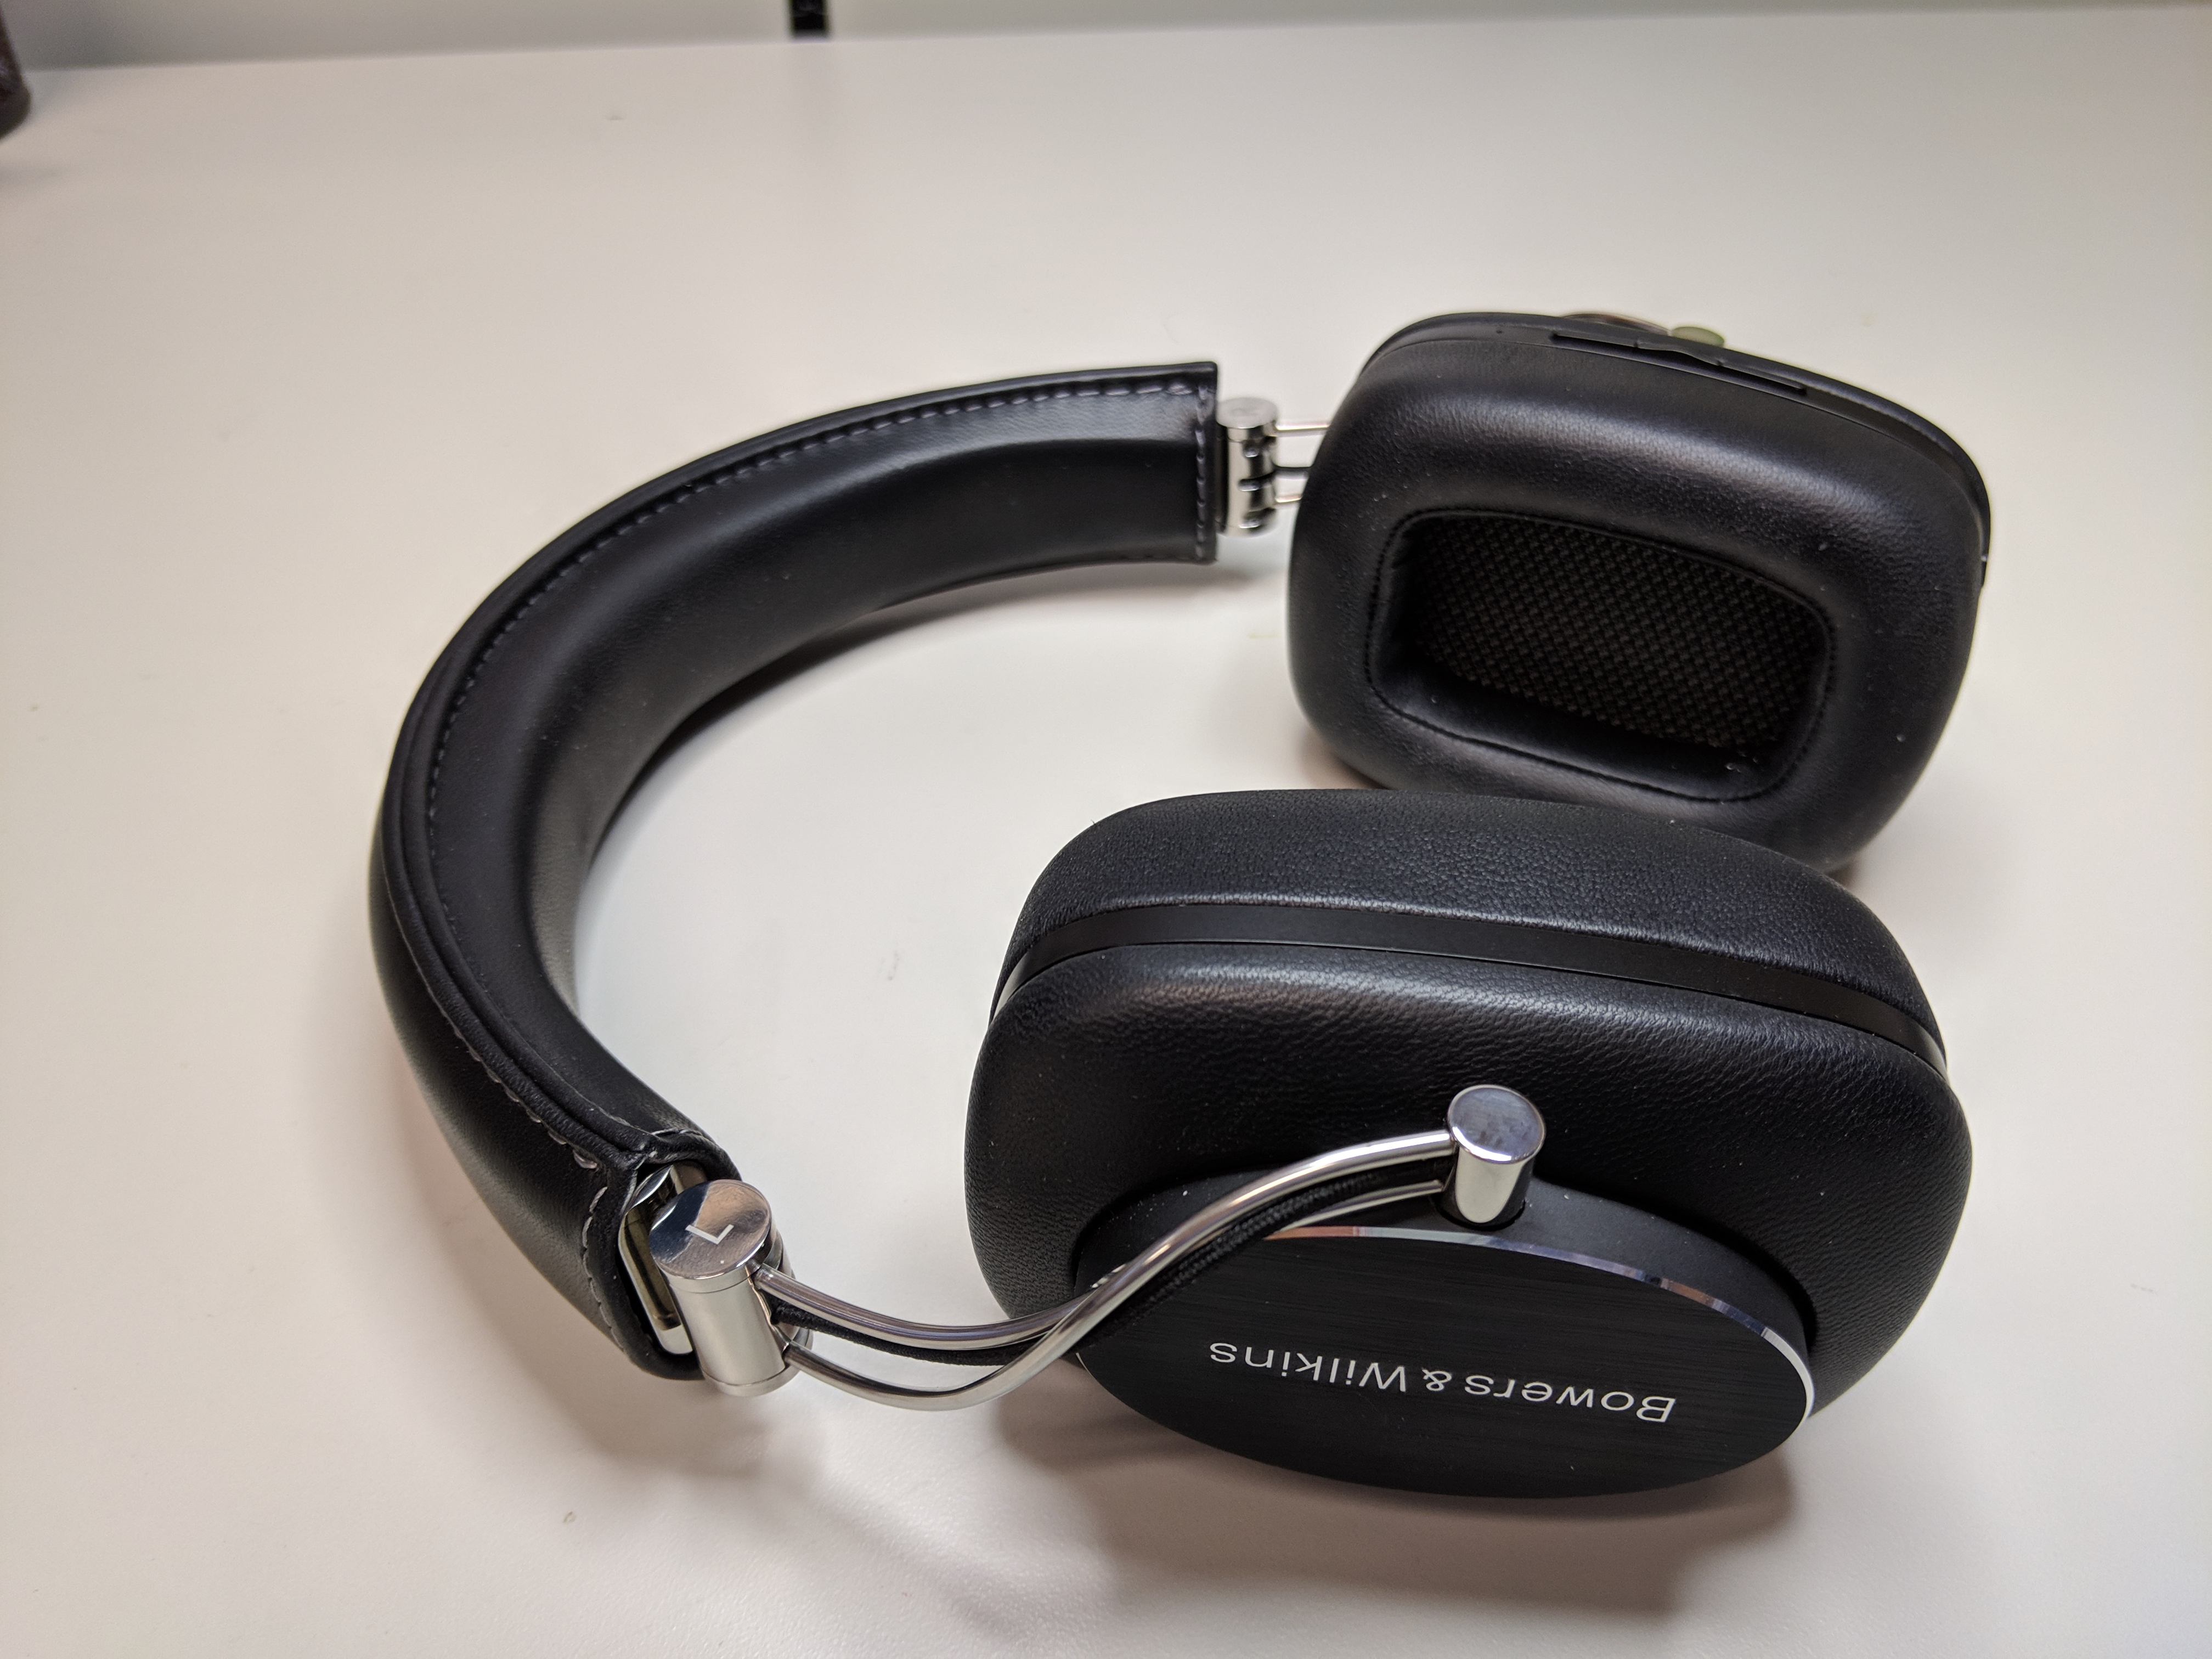 7d29f531965 FS: Bowers & Wilkins P7 Wireless Headphones | Headphone Reviews and ...